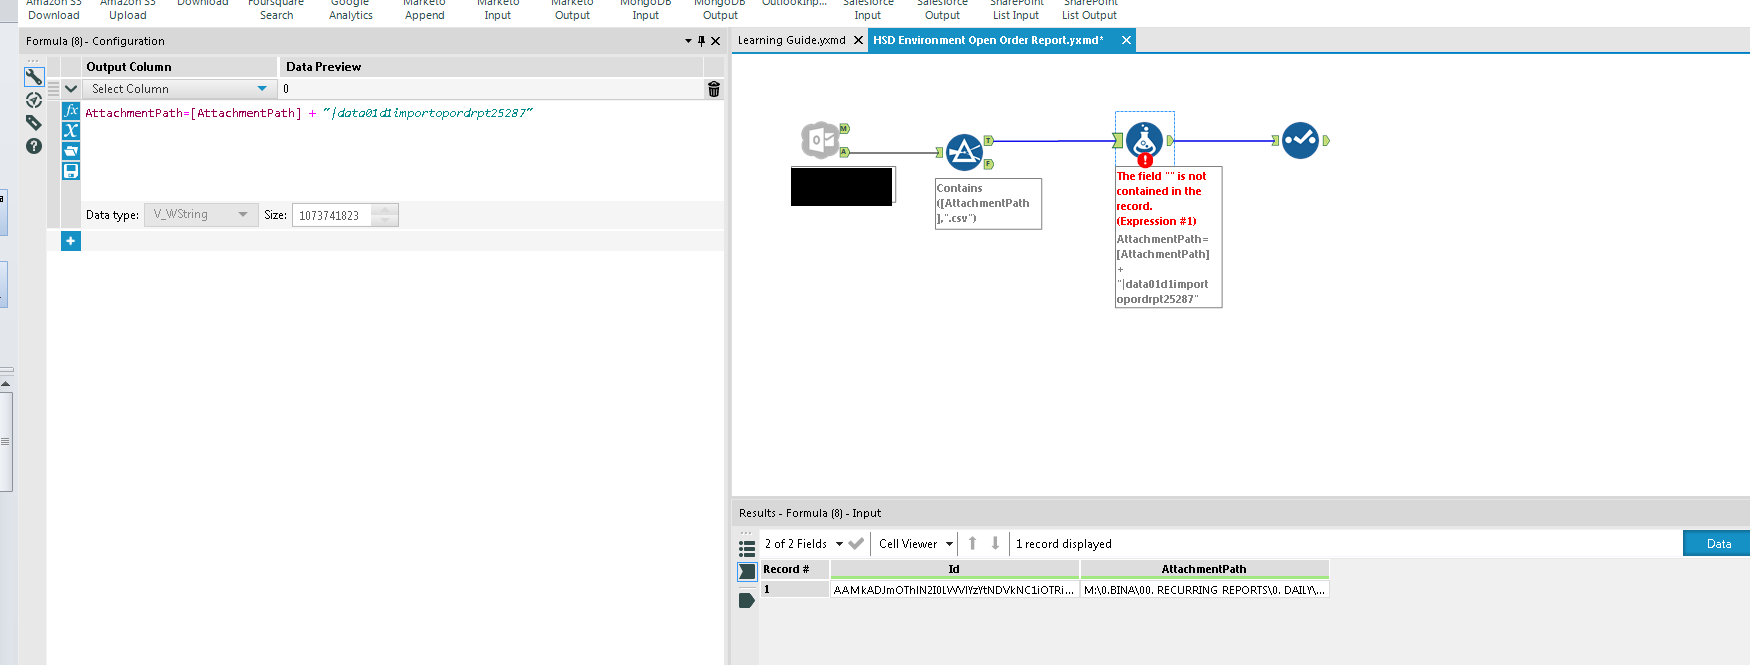 Outlook Input tool Created with the Alteryx SDK - Page 2